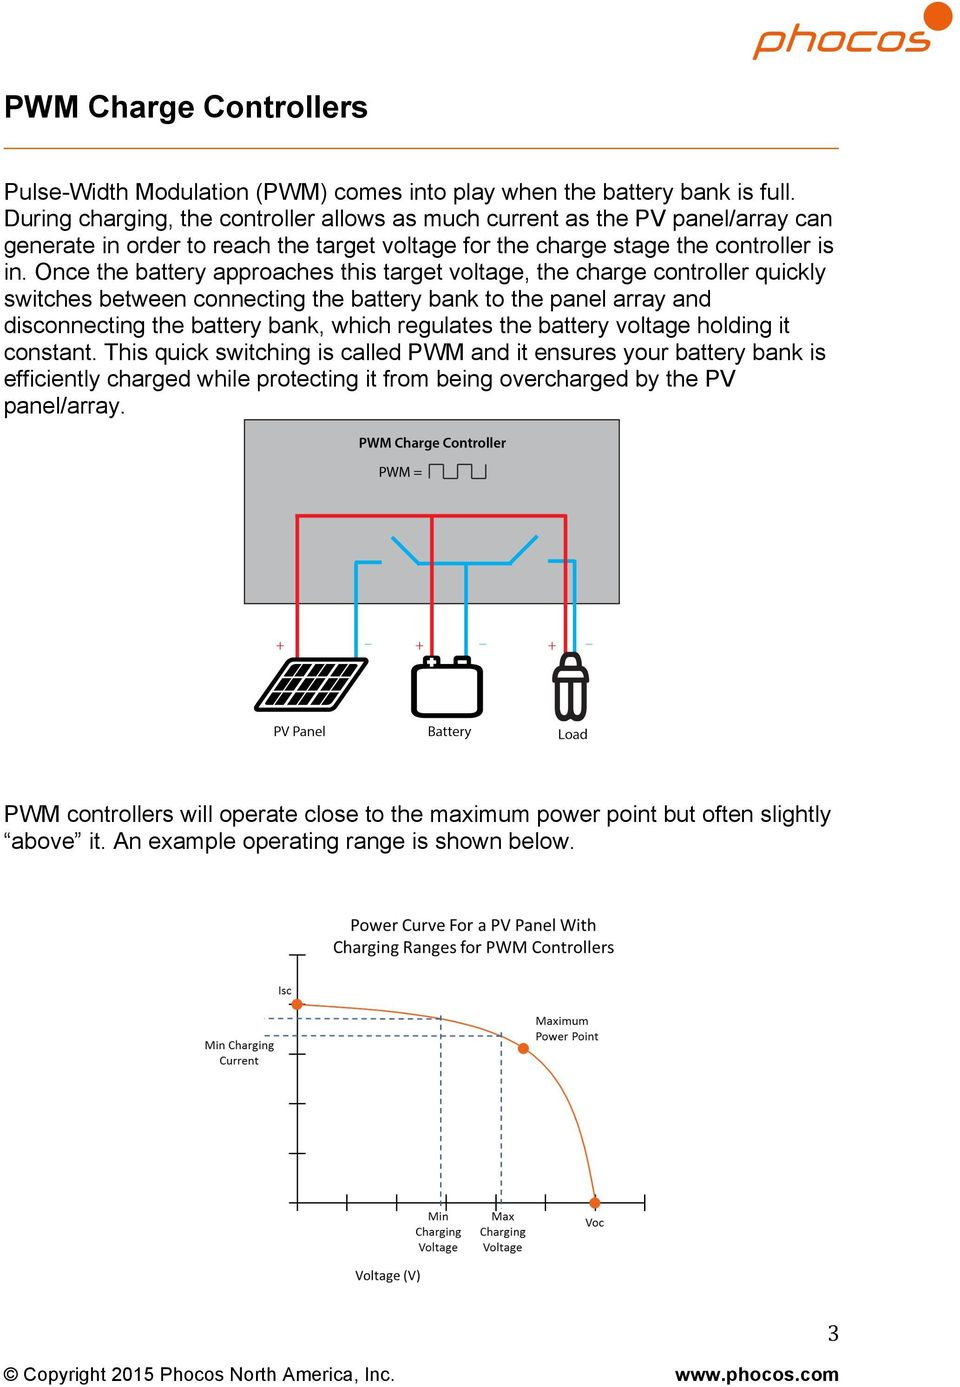 Comparing Pwm Mppt Charge Controllers Pdf Simple Controlled Dc To Cell Phone Charger Circuit Science Once The Battery Approaches This Target Voltage Controller Quickly Switches Between Connecting